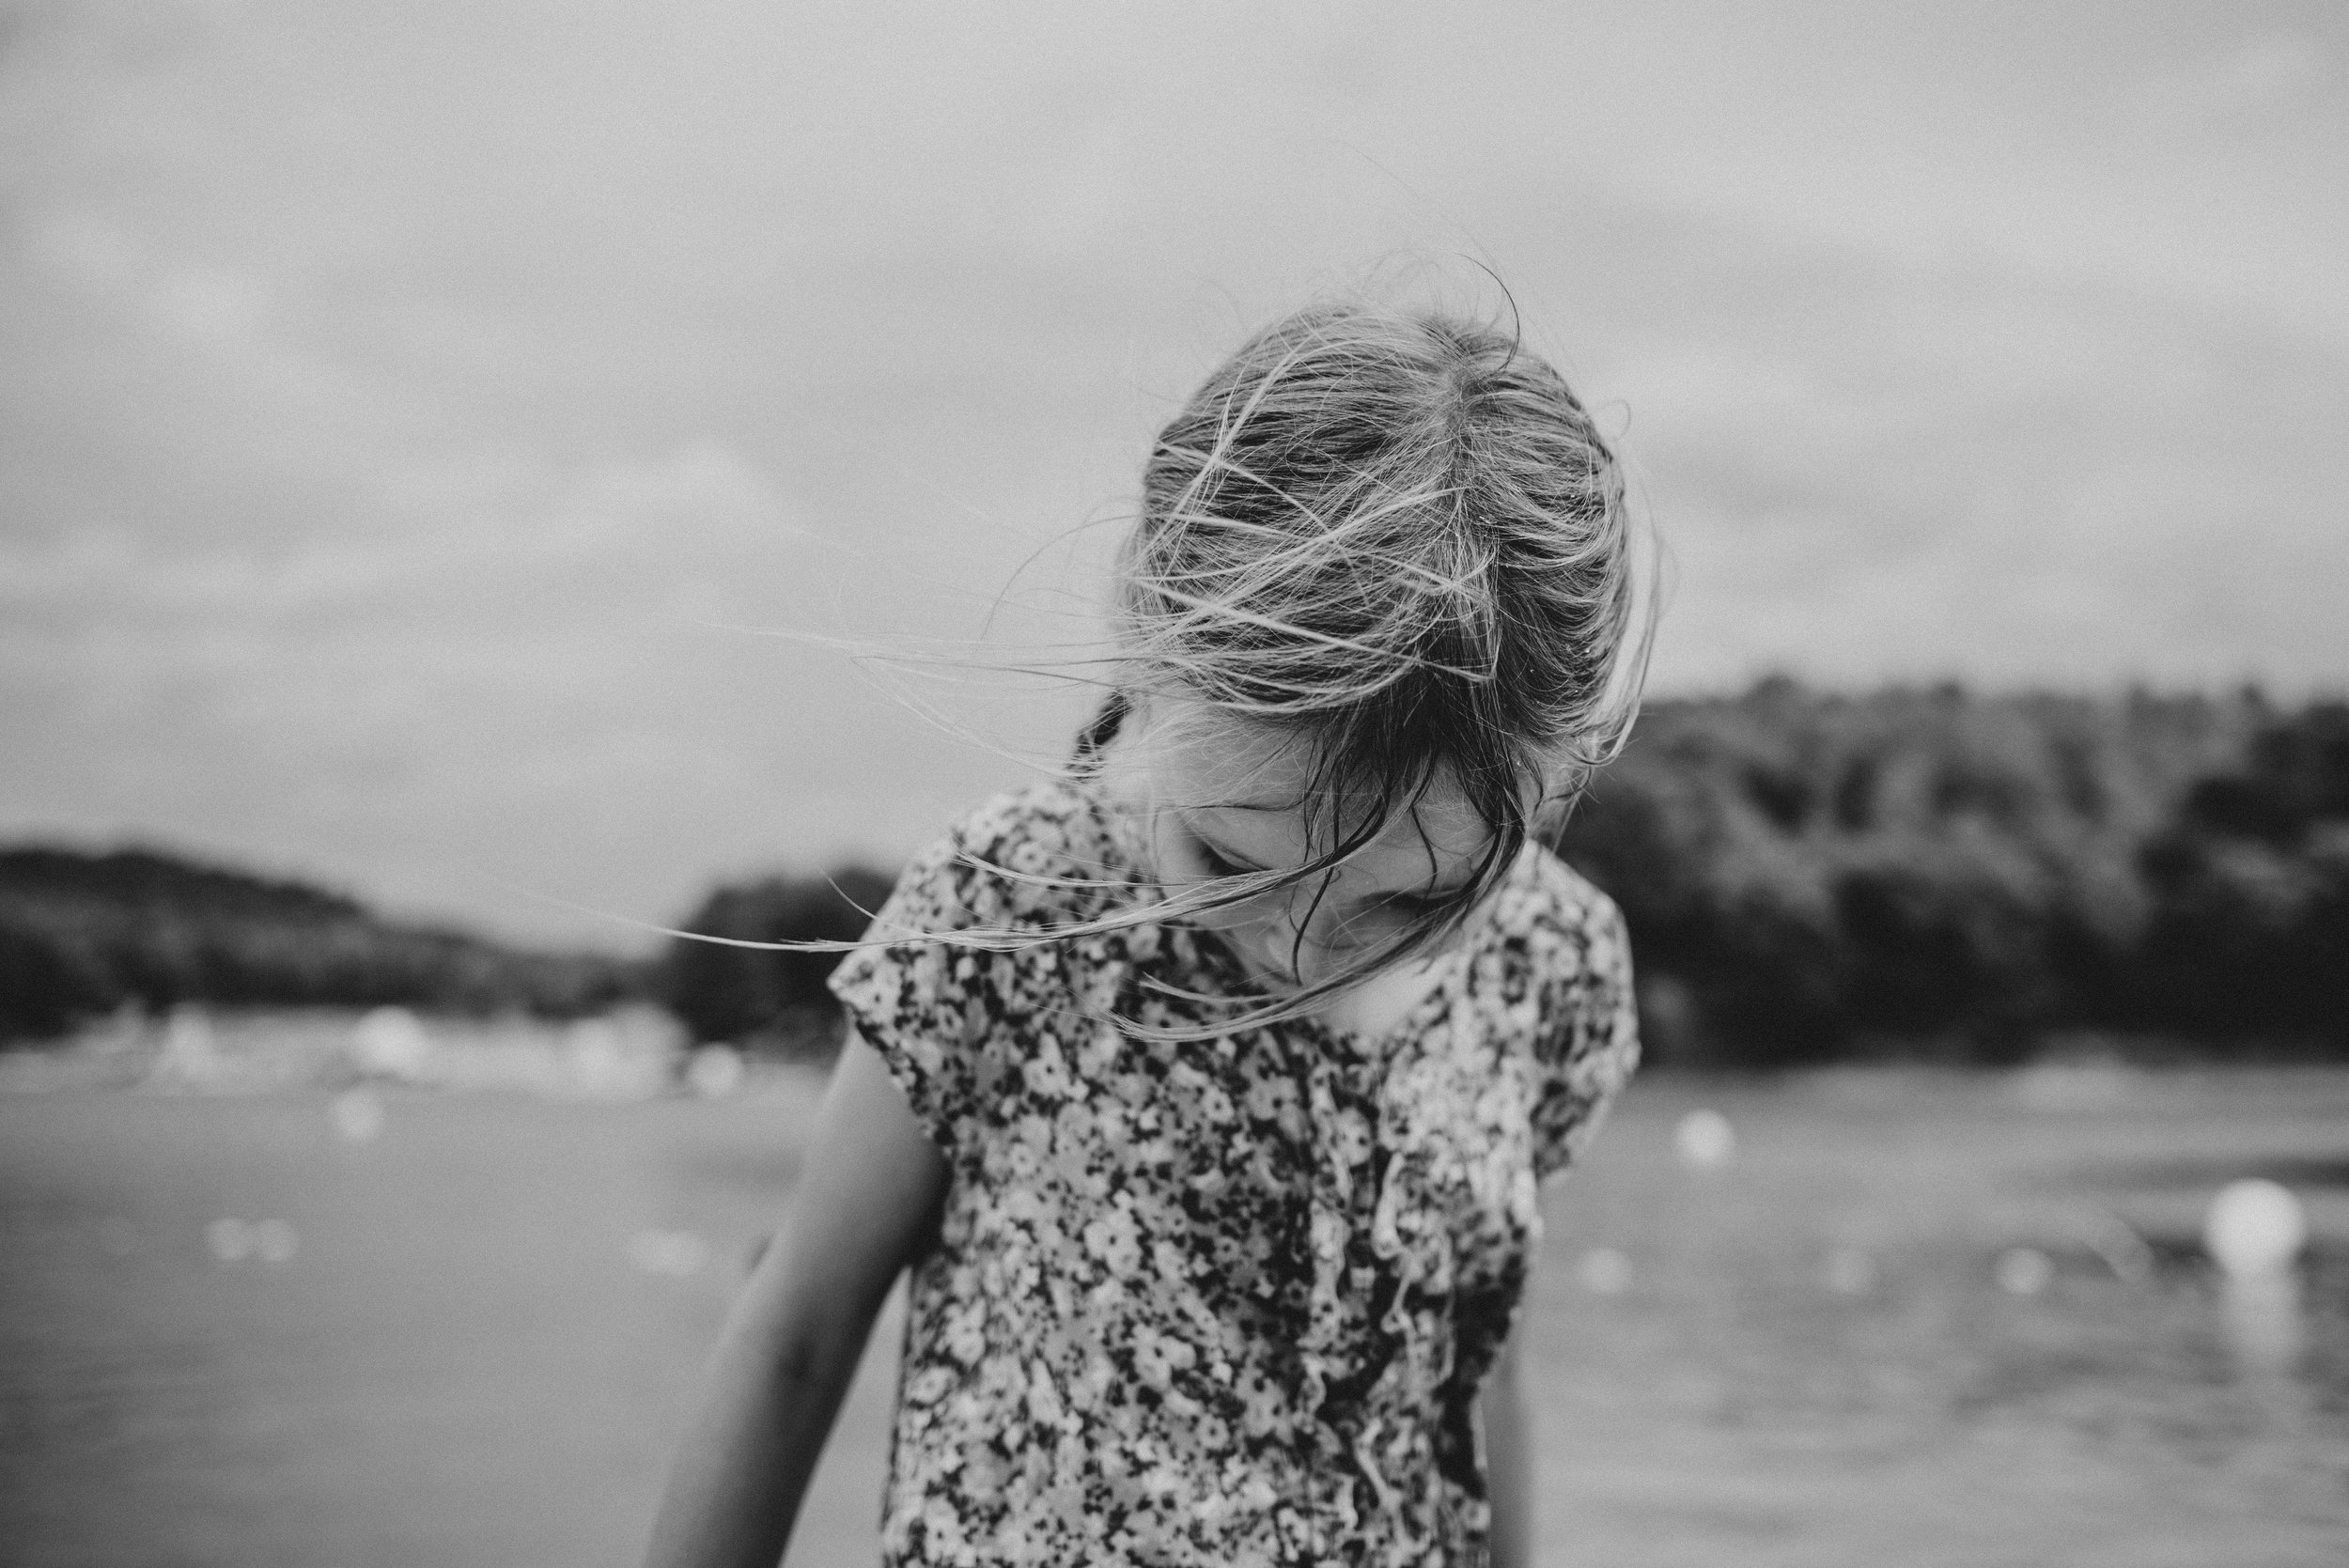 Young girl looks down Essex UK Documentary Portrait Photographer